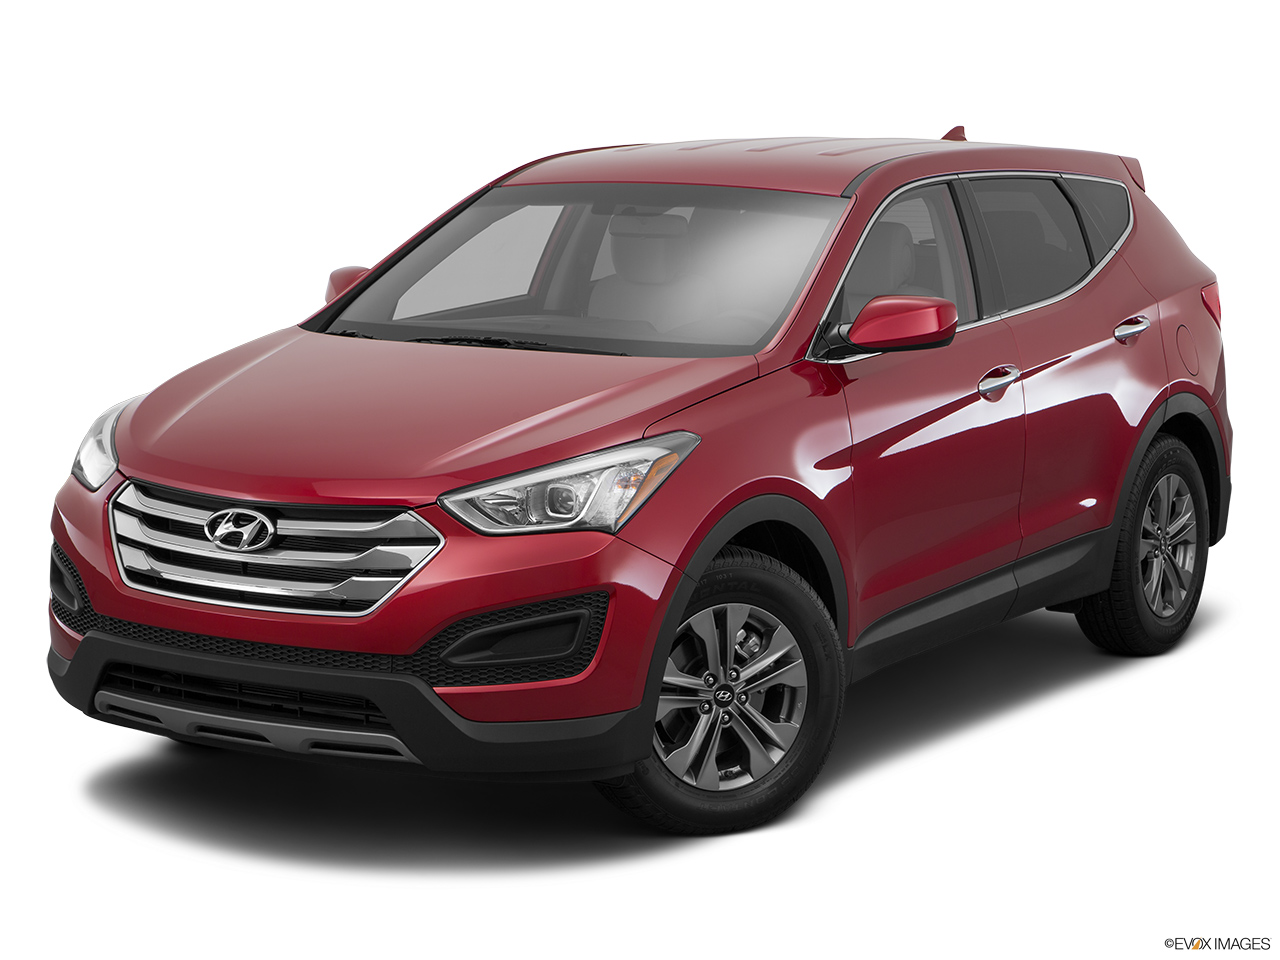 2016 hyundai santa fe prices in kuwait gulf specs reviews for kuwait city yallamotor. Black Bedroom Furniture Sets. Home Design Ideas